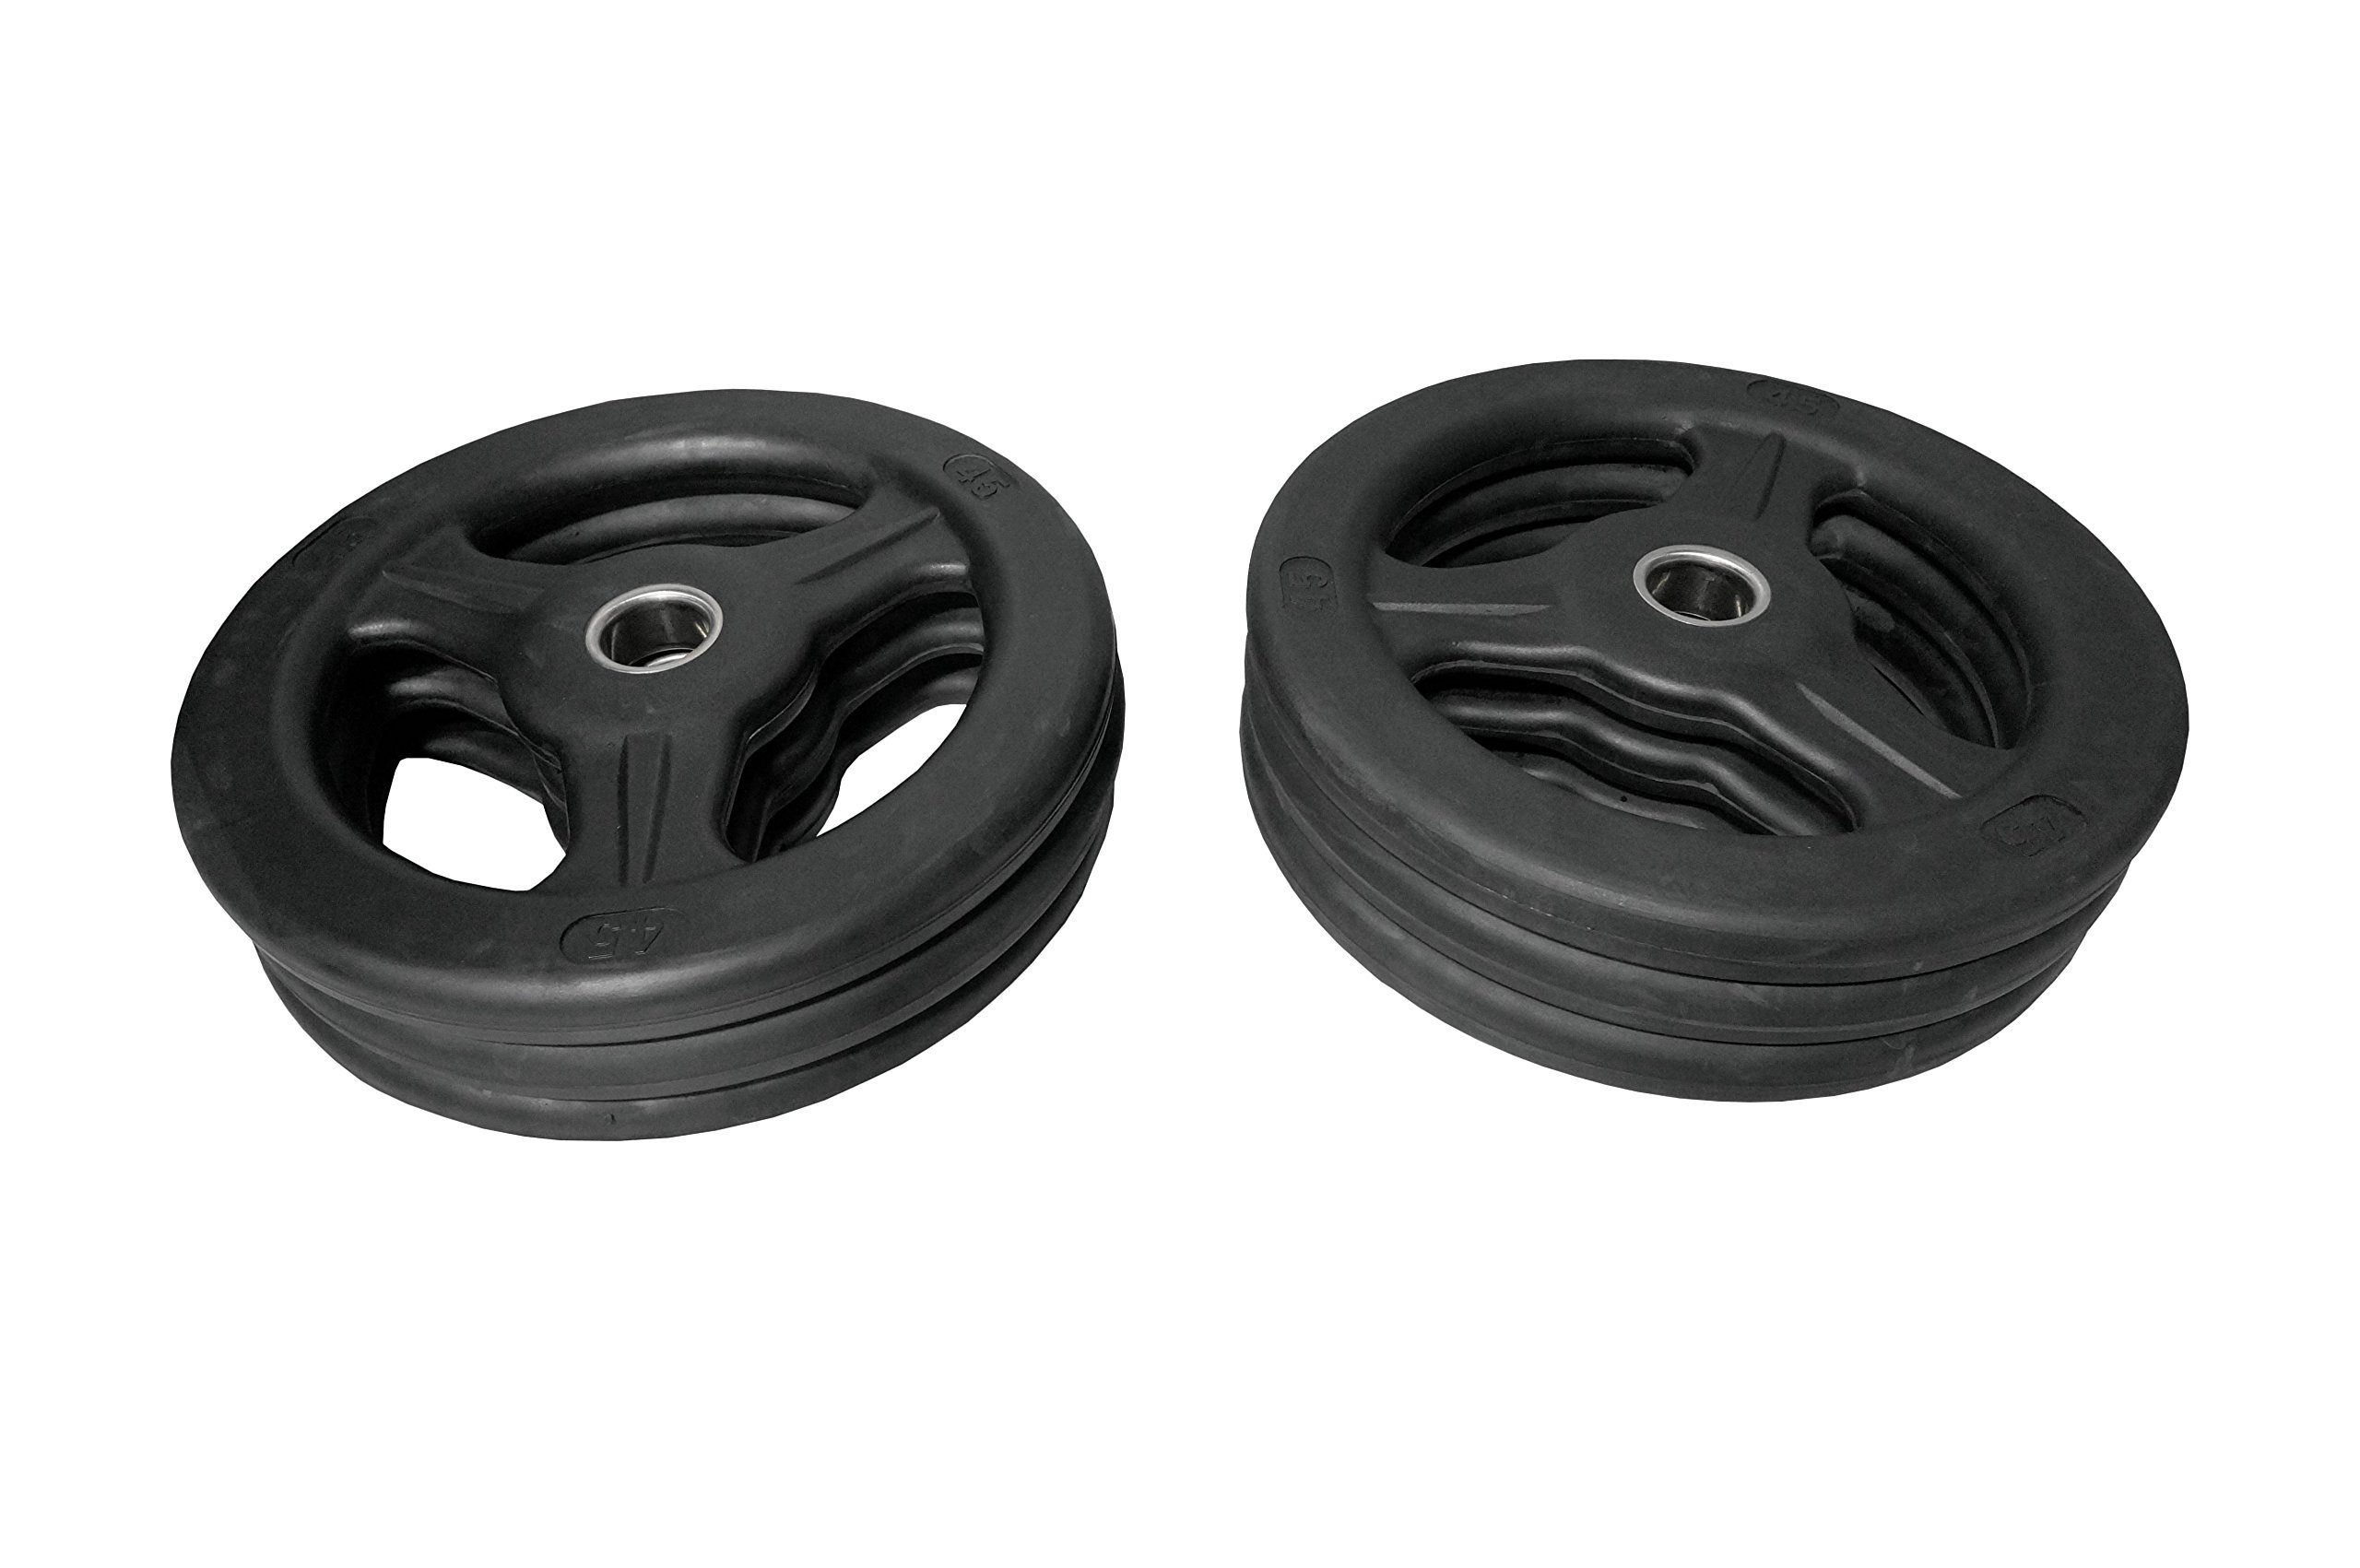 Torque Fitness 270 lb Traction Kit for Sled Tank, Black